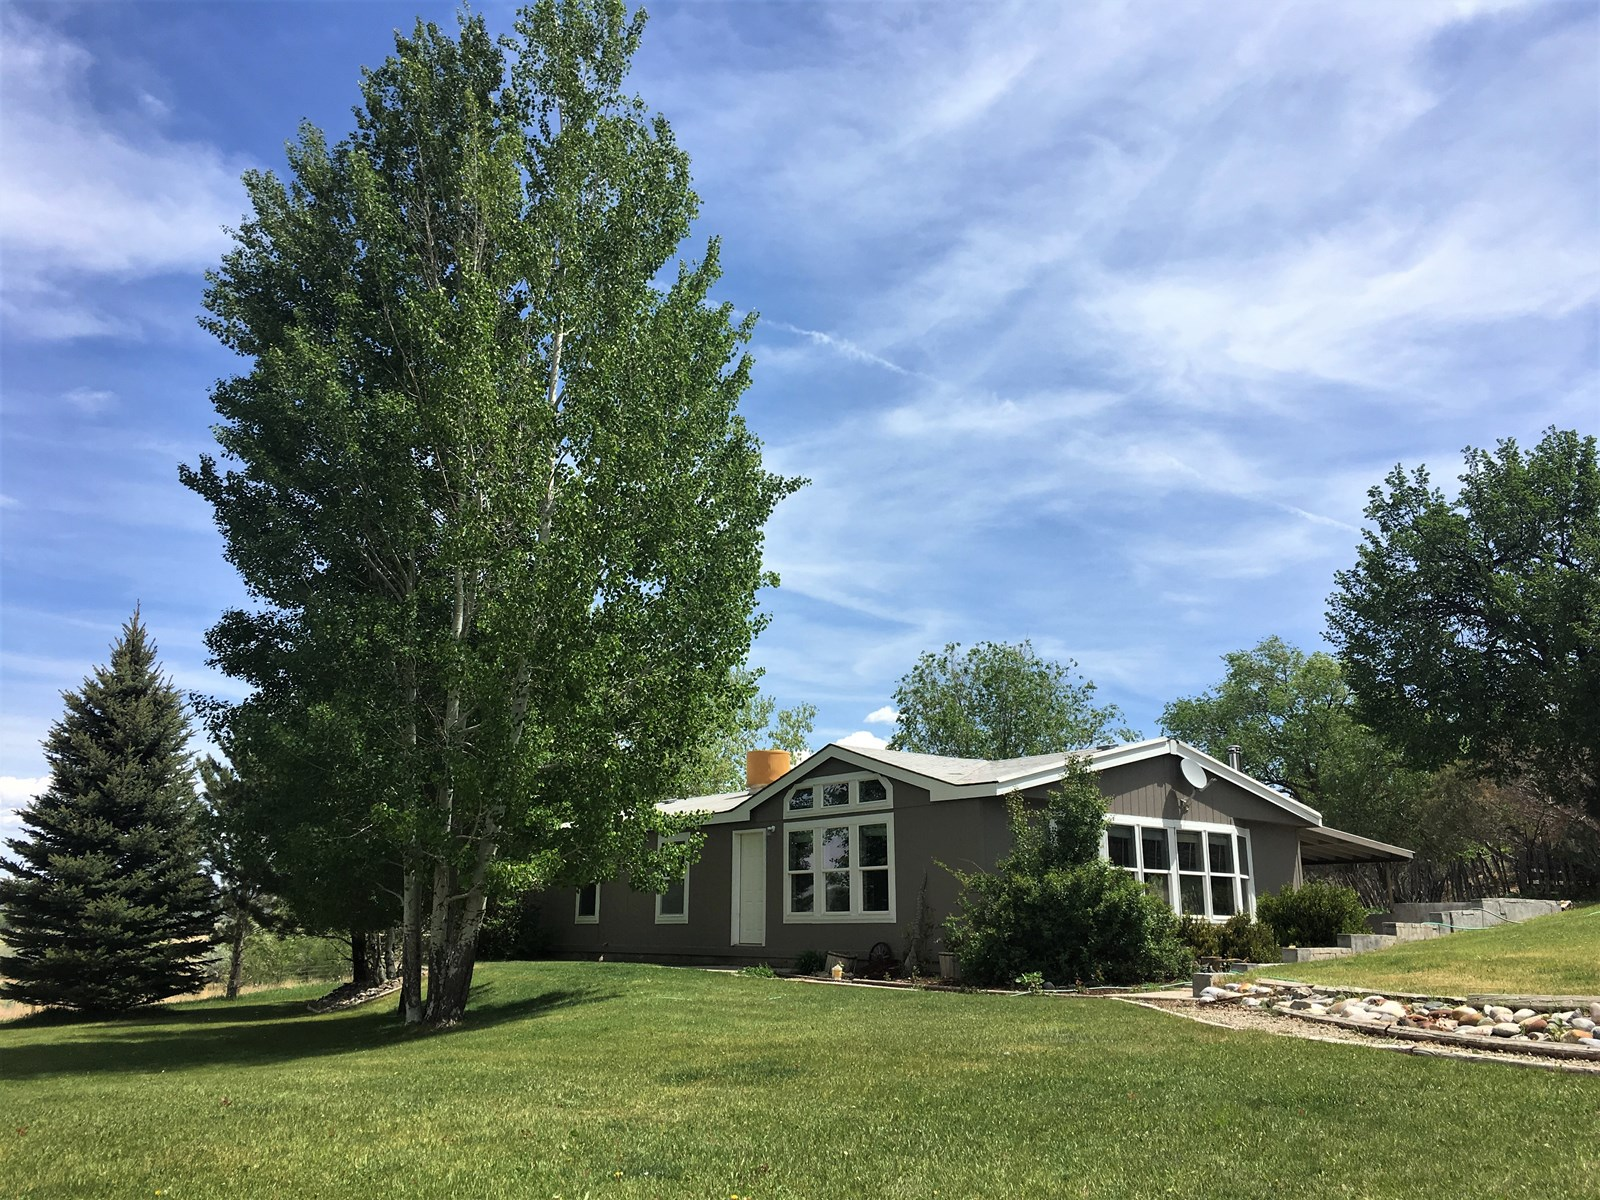 Home & Shop on Acreage in Cortez, CO For Sale